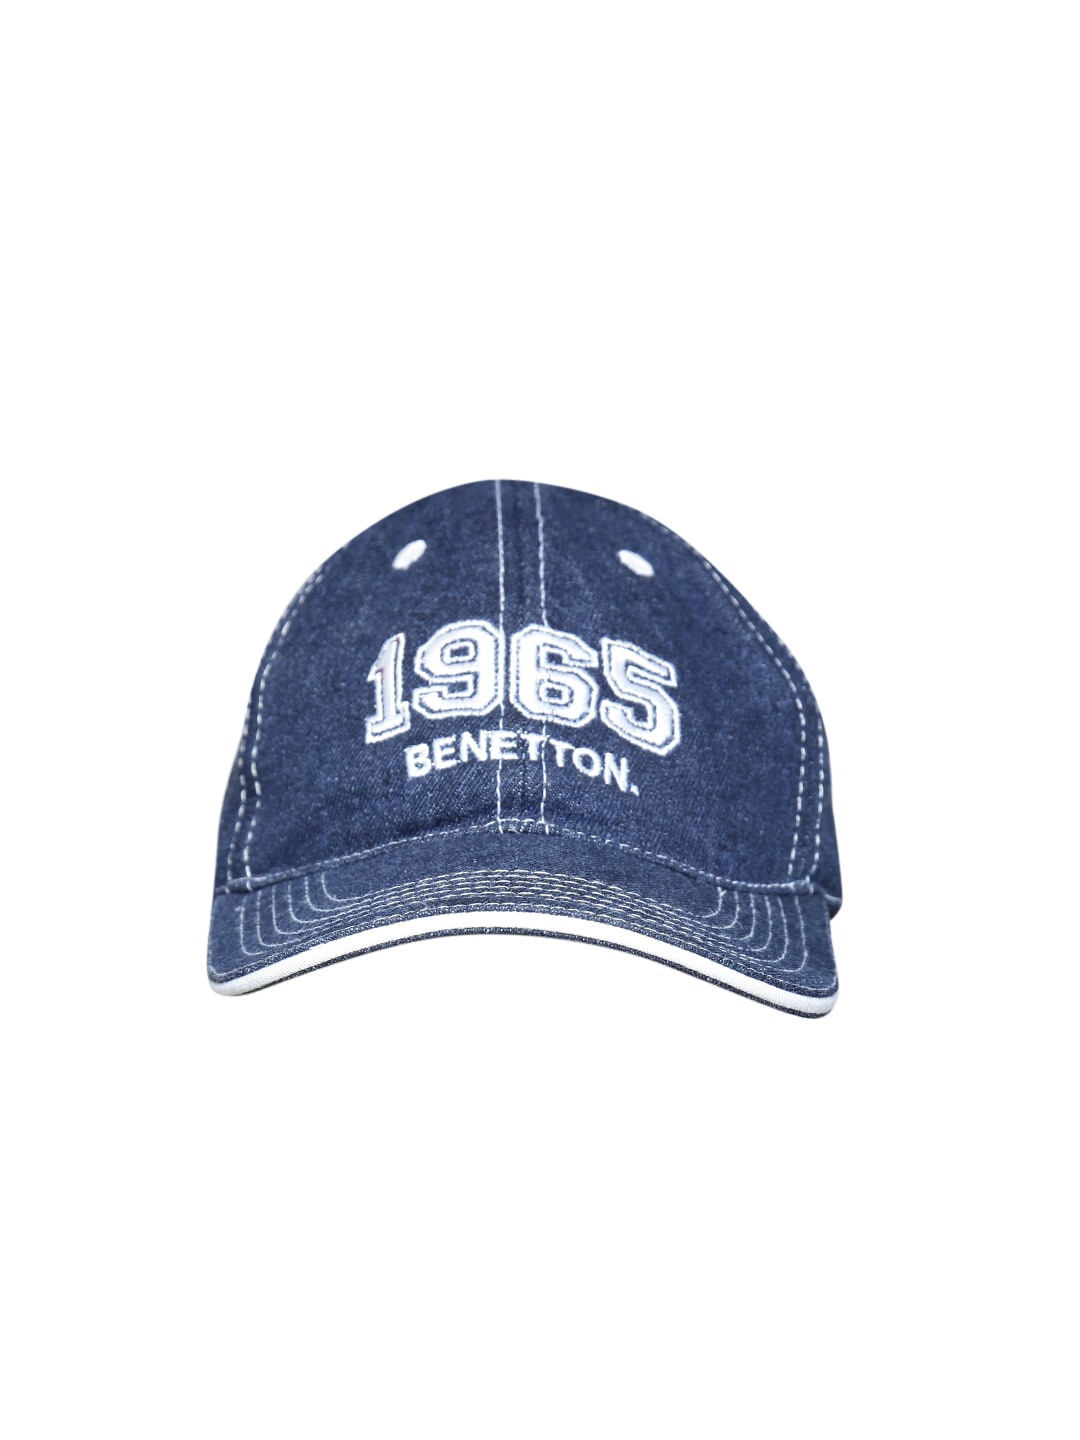 f96d6fb8b80 Hats   Caps For Men - Shop Mens Caps   Hats Online at best price ...